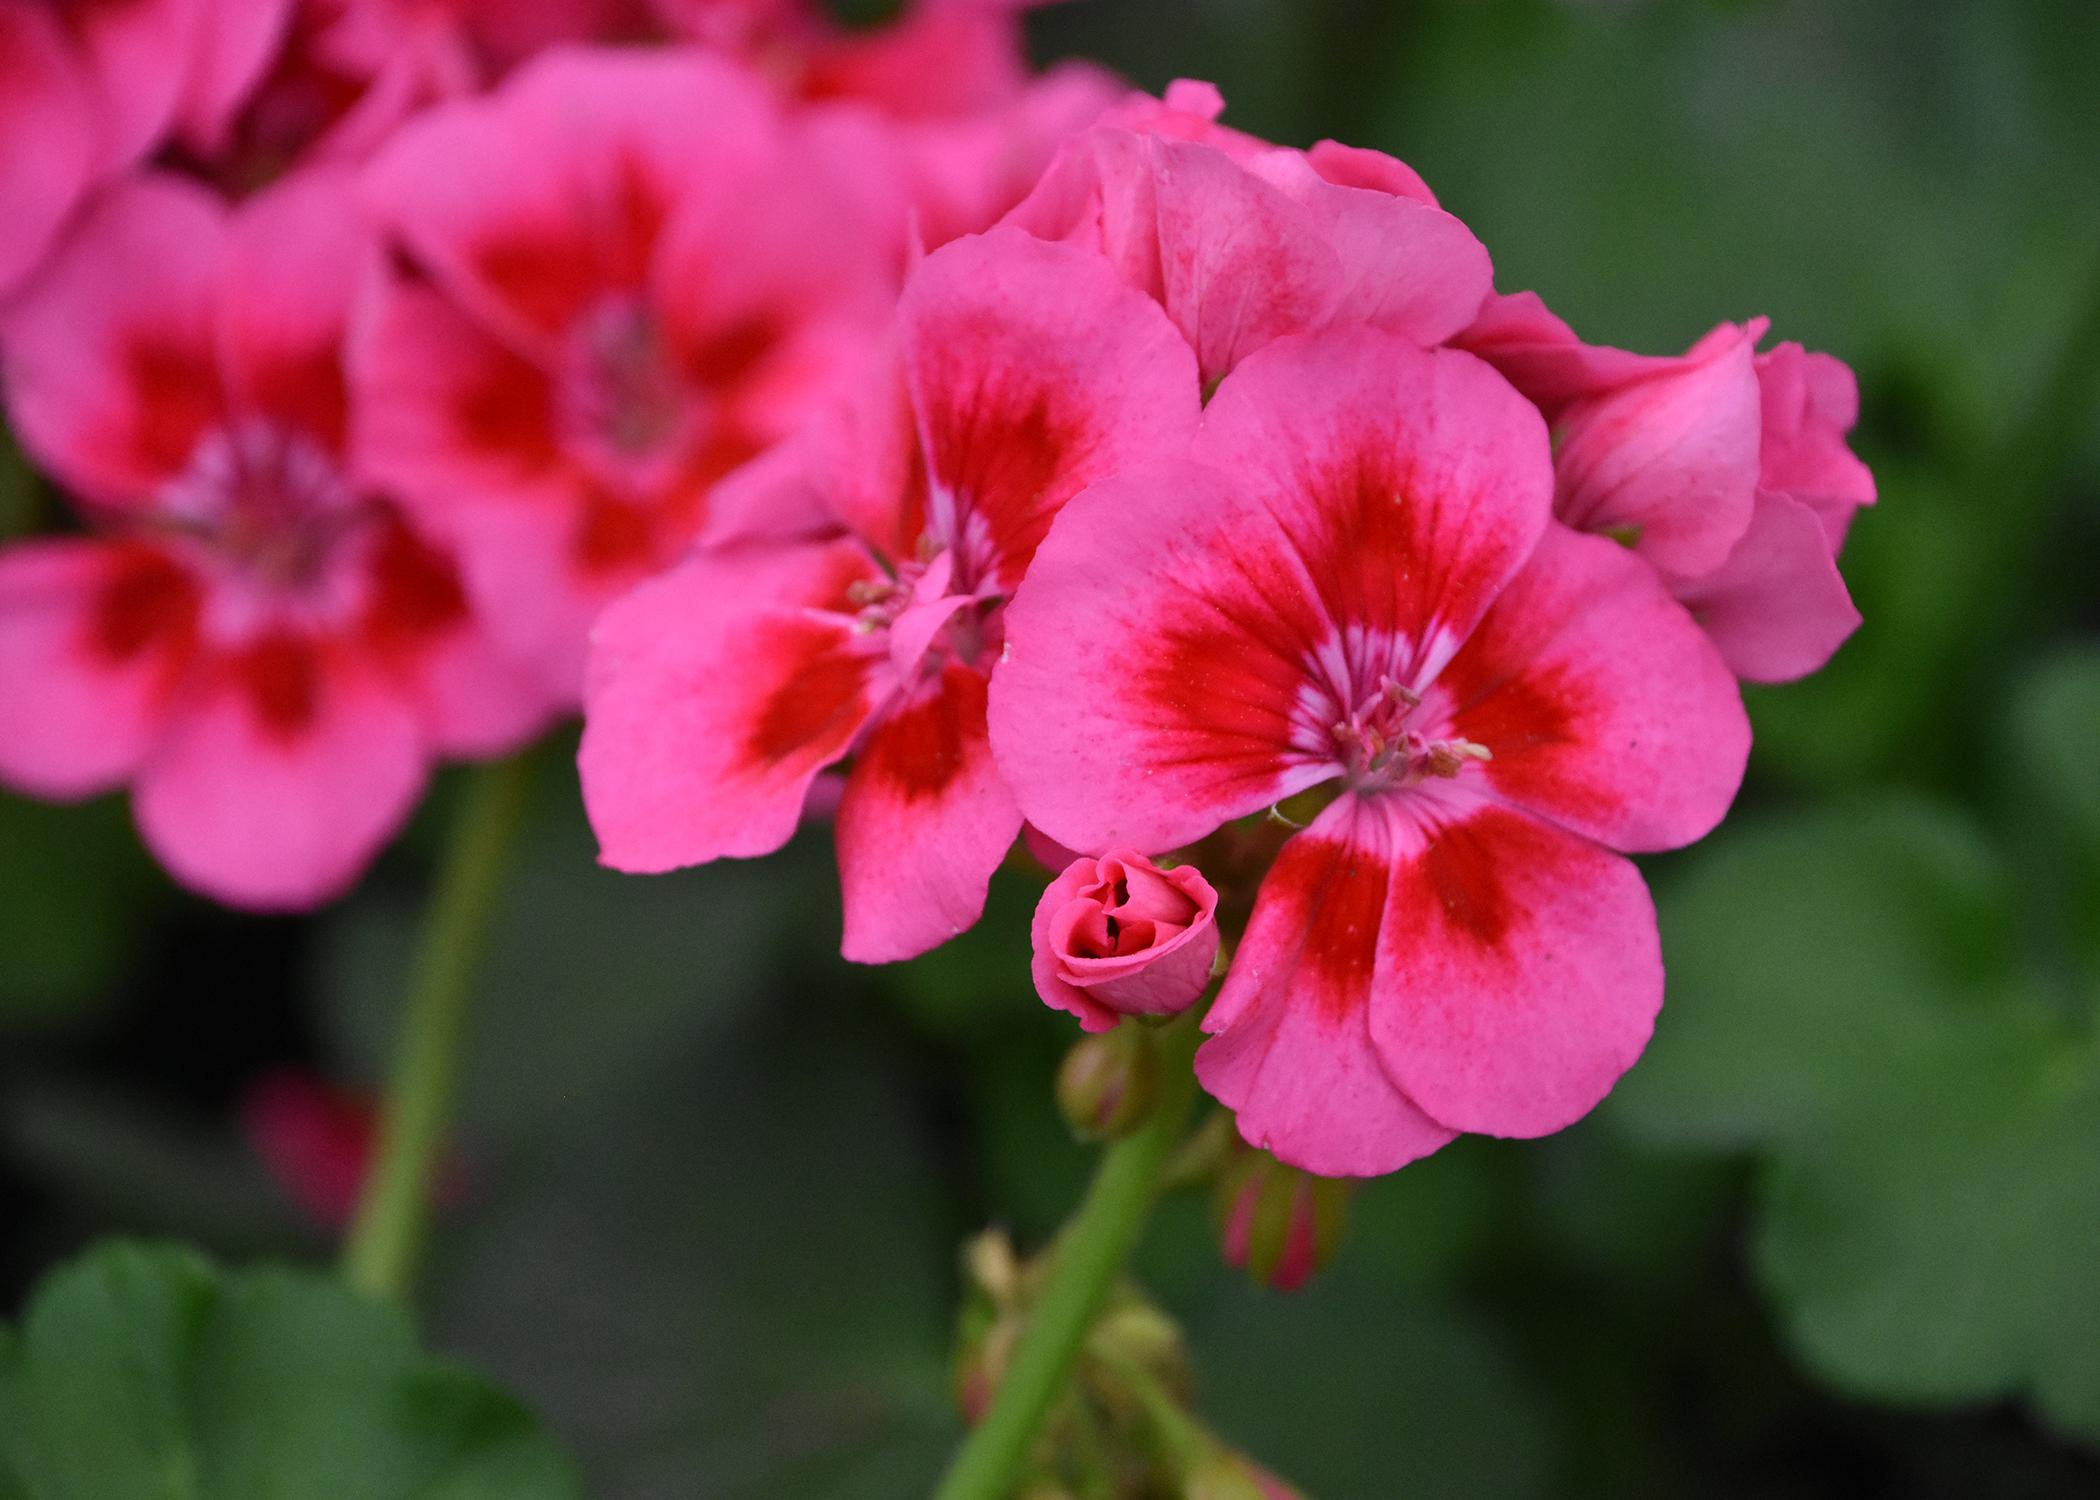 A cluster of pink flowers has dark-red centers.